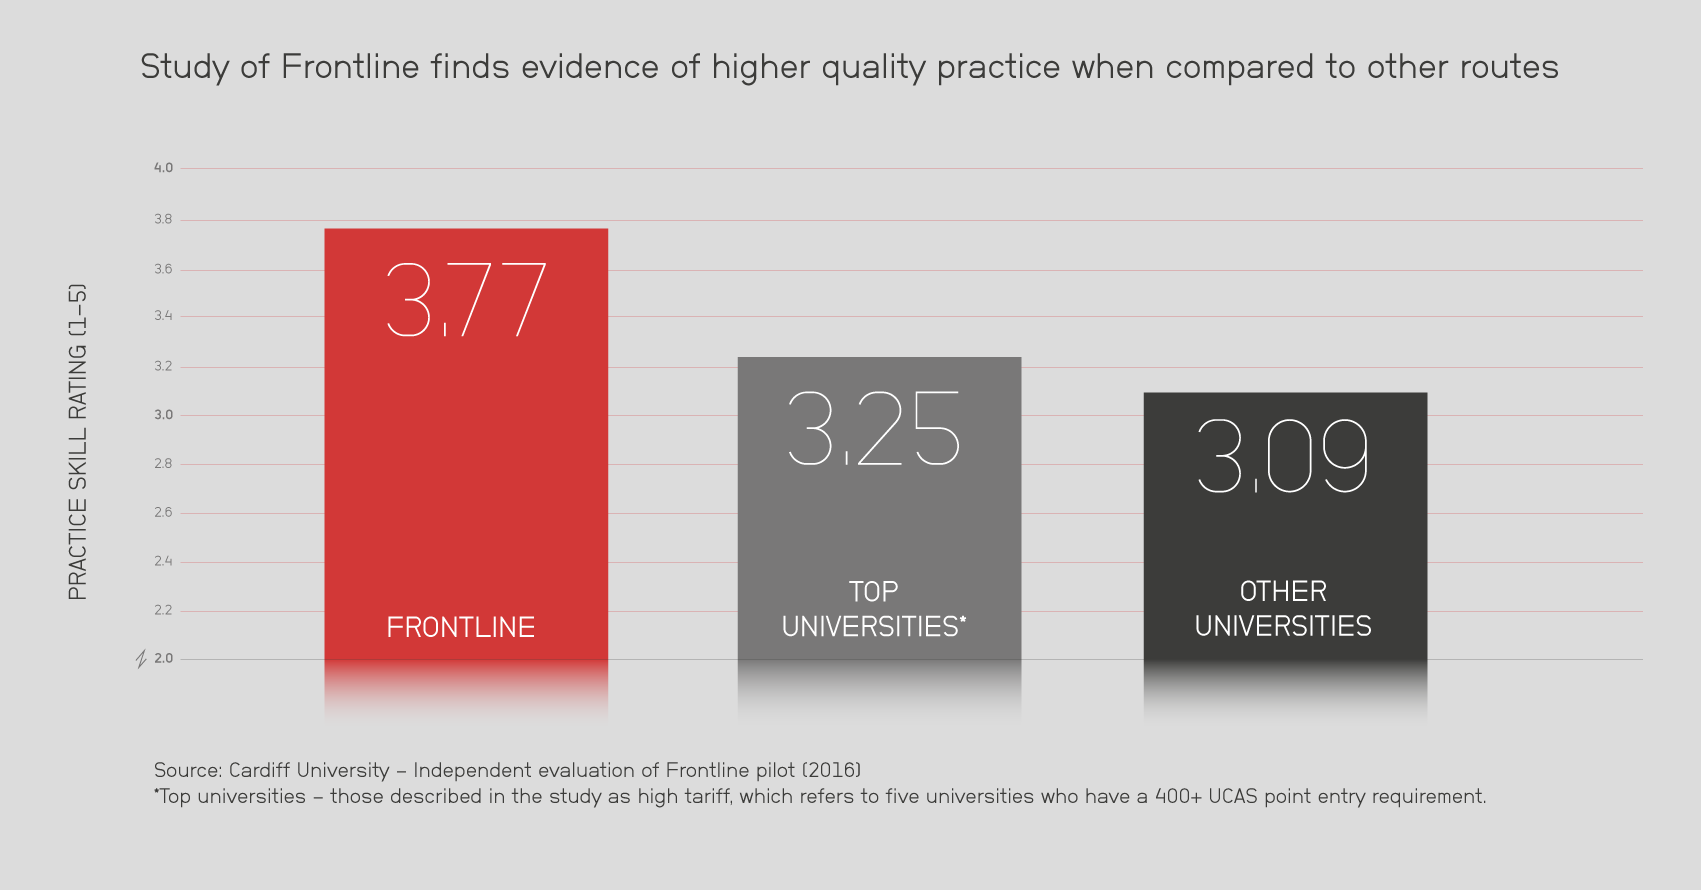 Study of Frontline finds evidence of higher quality pratice when compared to other routes - Infographic 24-03-16.png